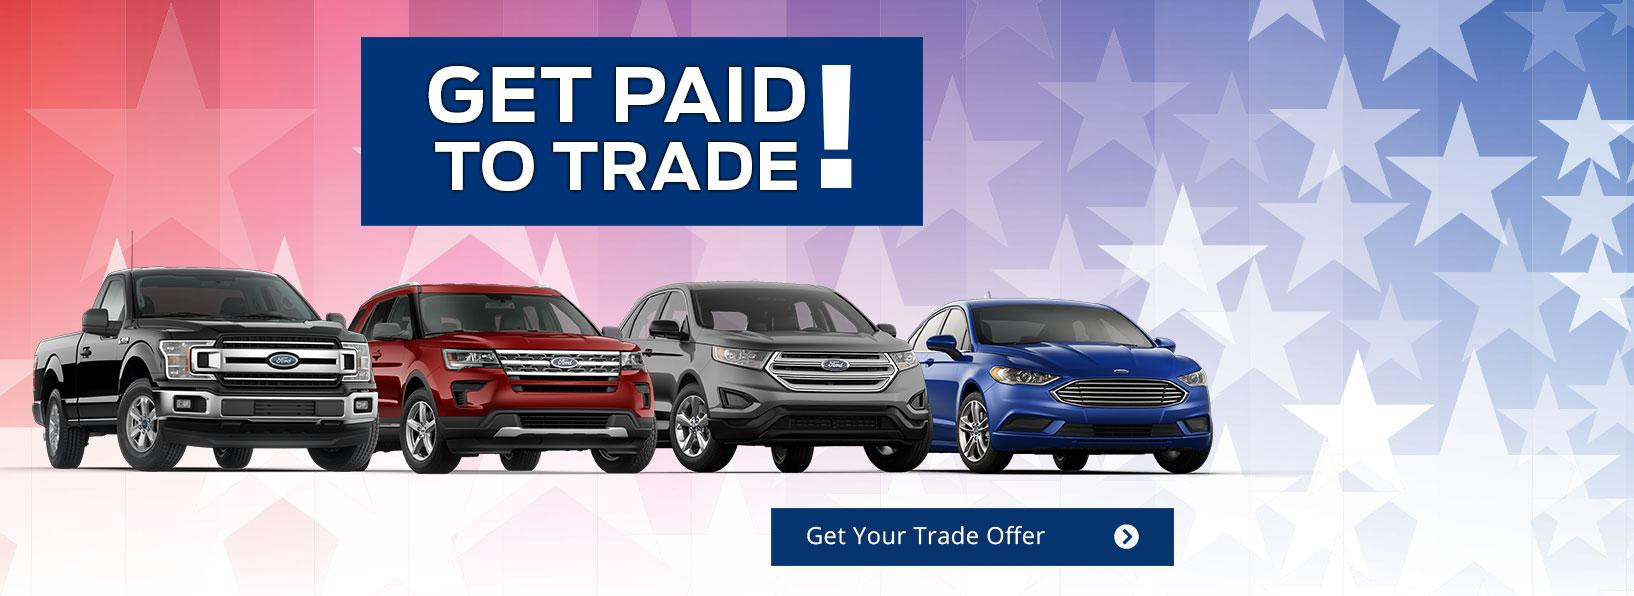 Get Paid to Trade!